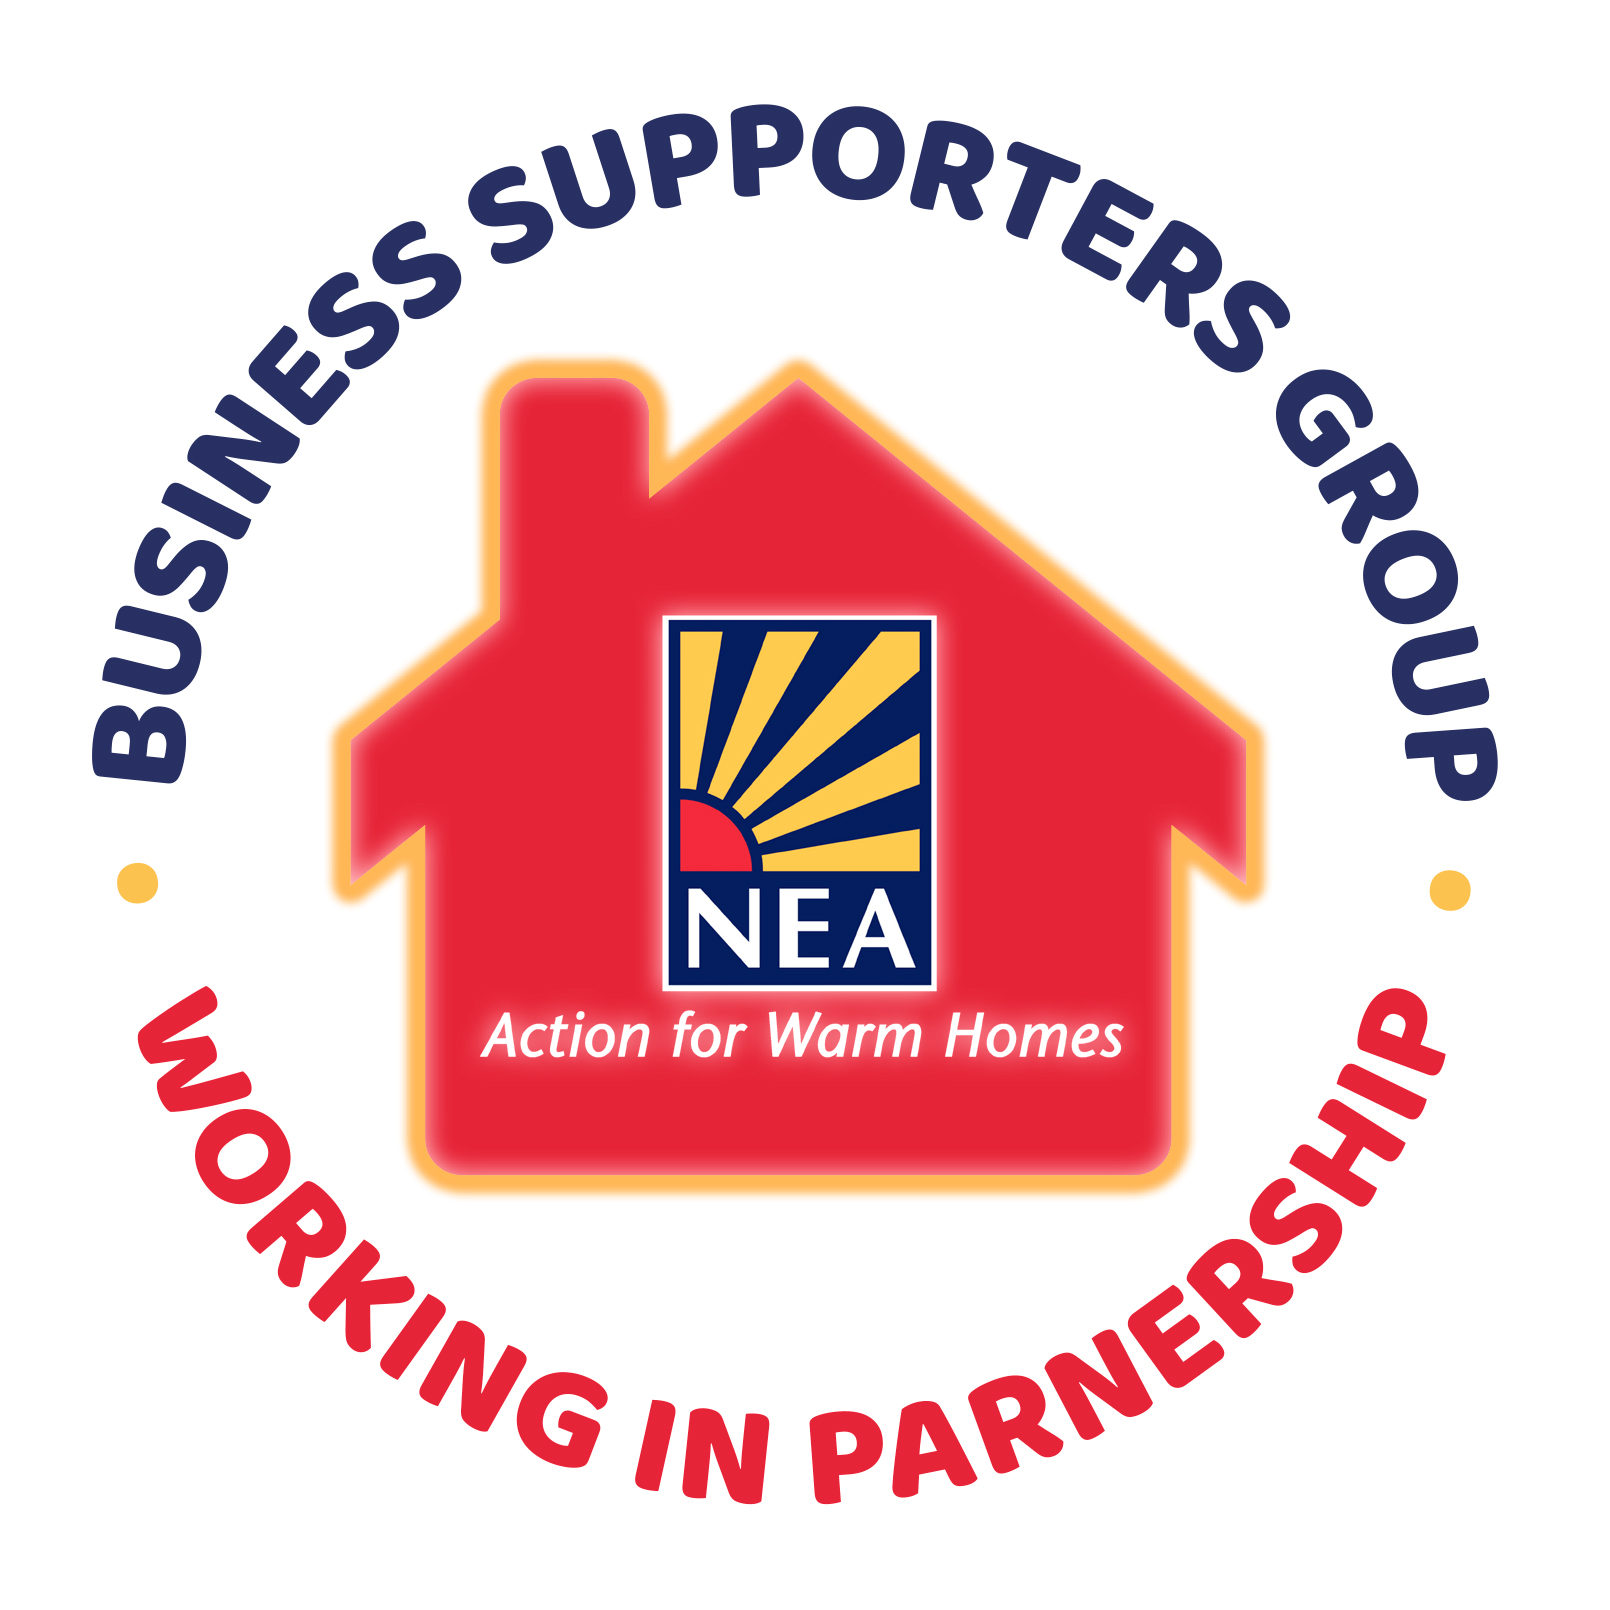 Business Supporters Group - Working In Partnership